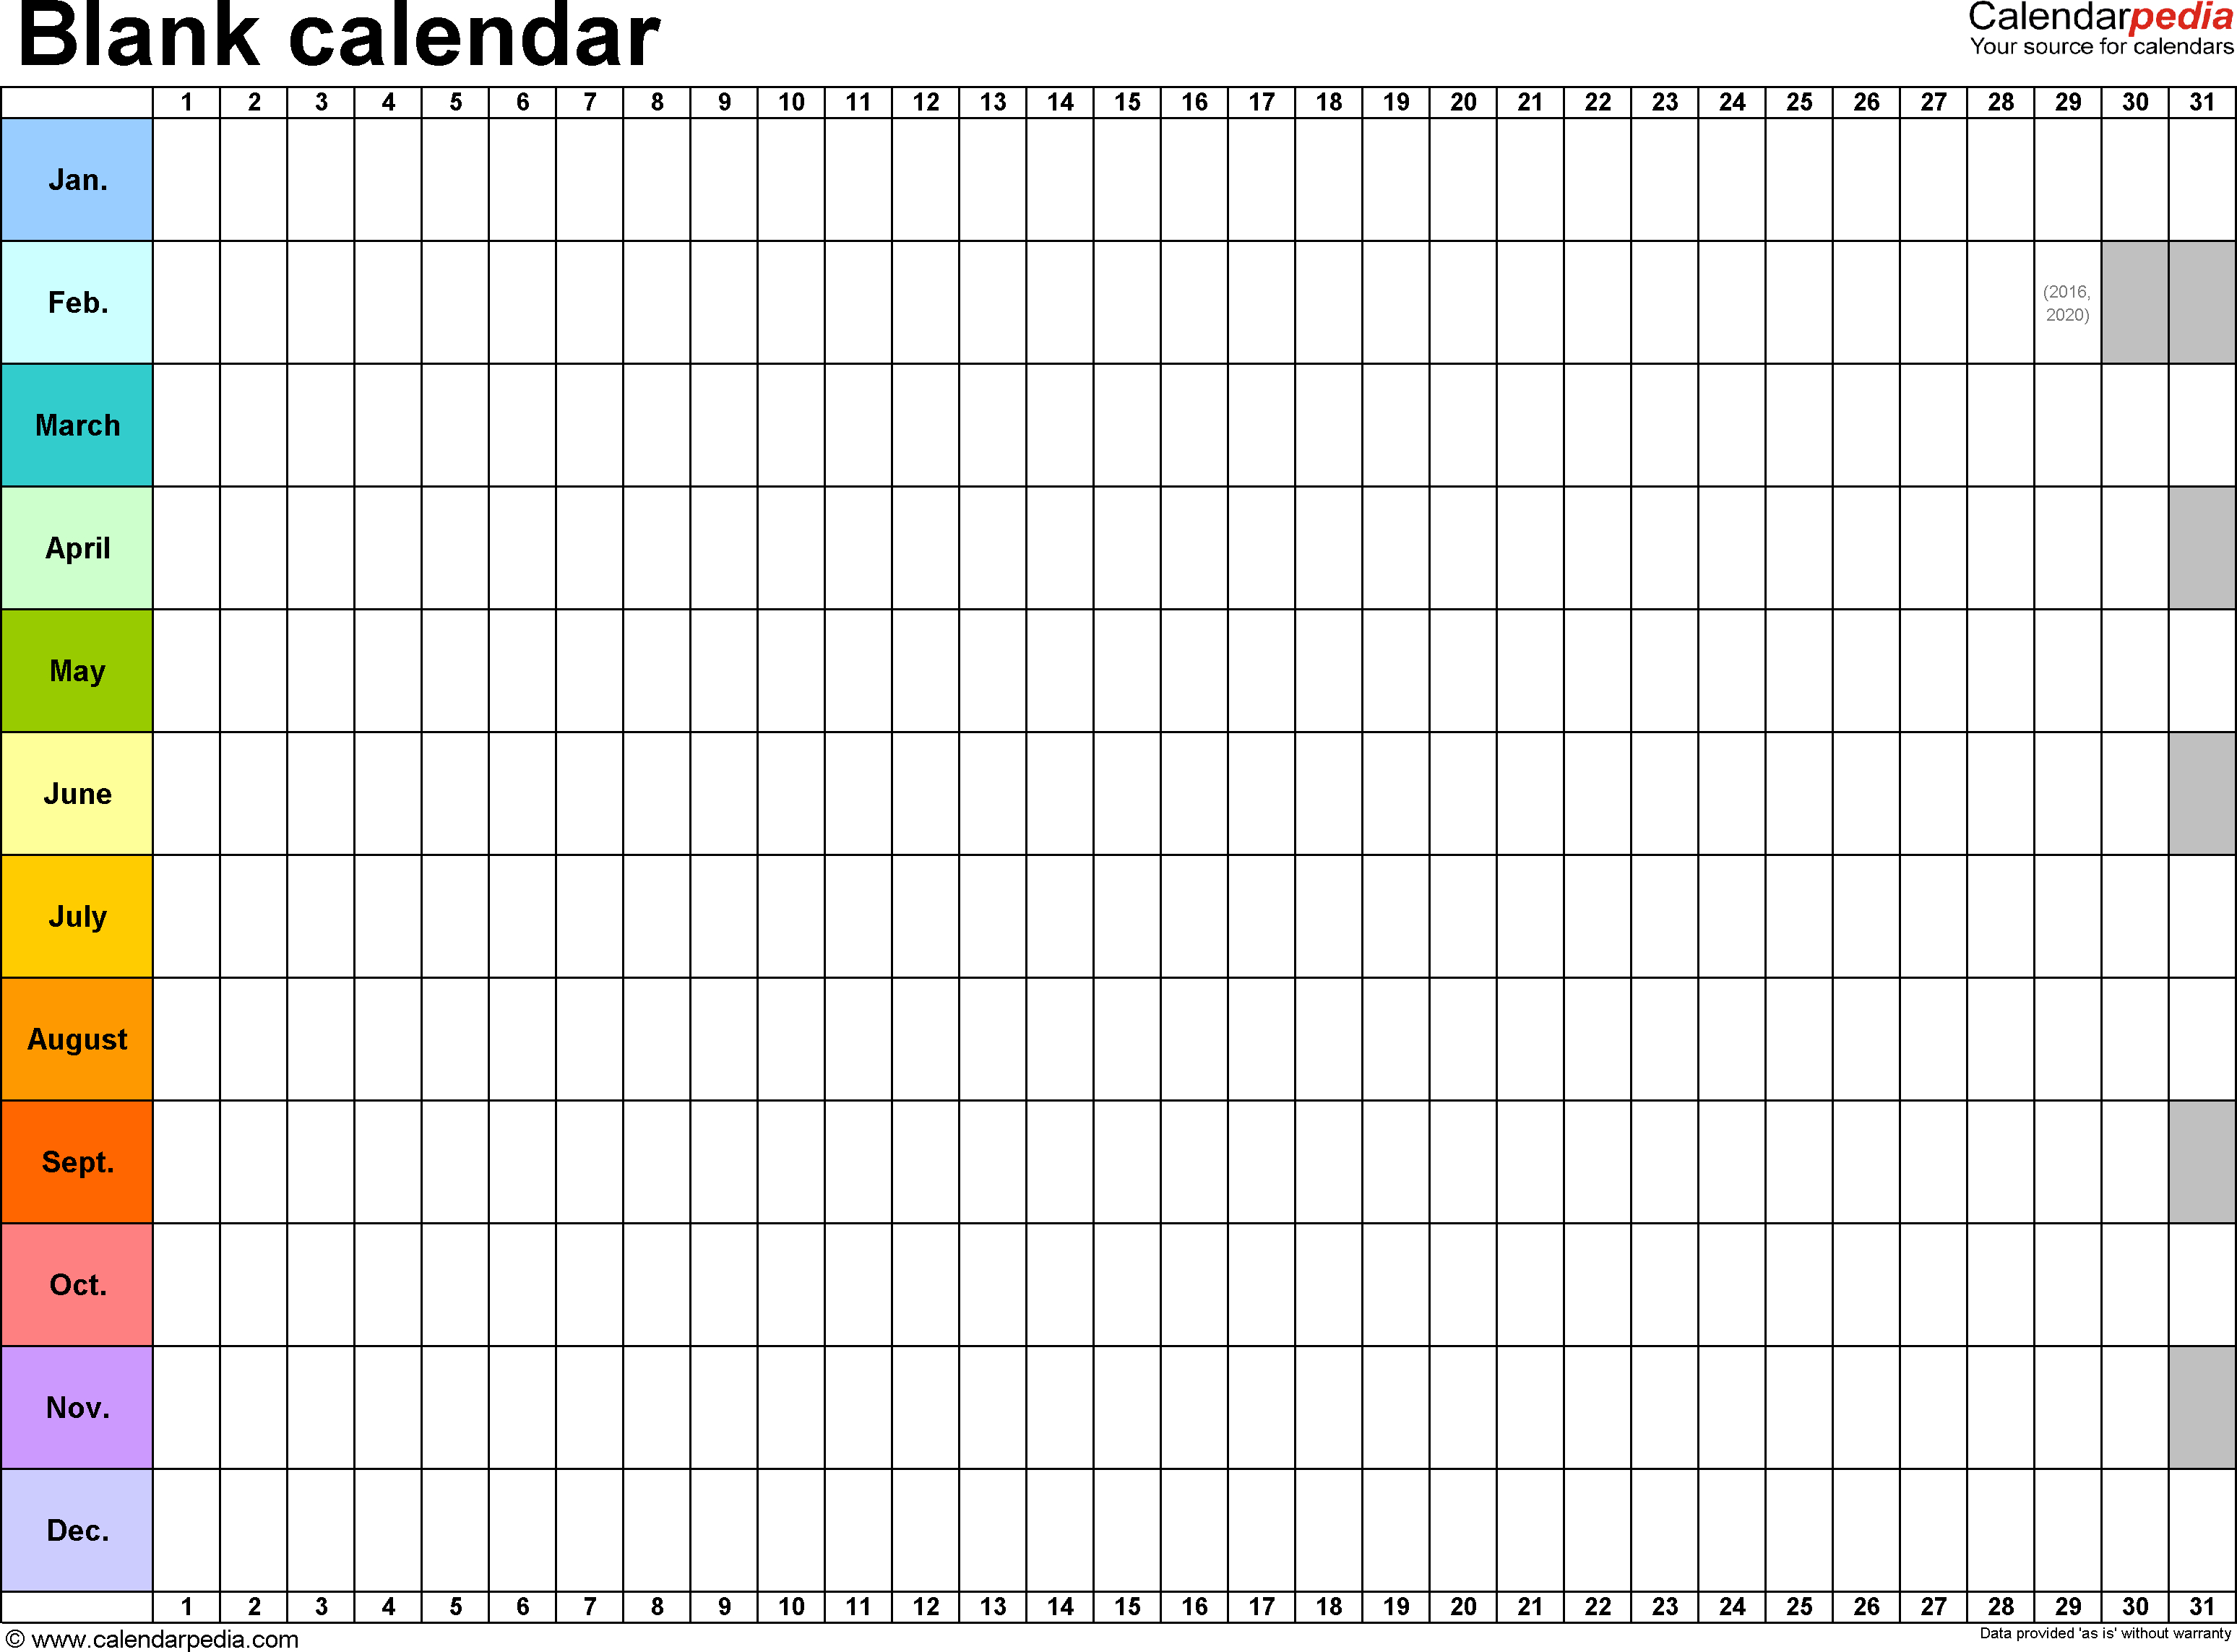 Blank Calendar - 9 Free Printable Microsoft Word Templates for Blank Calendar To Fill In